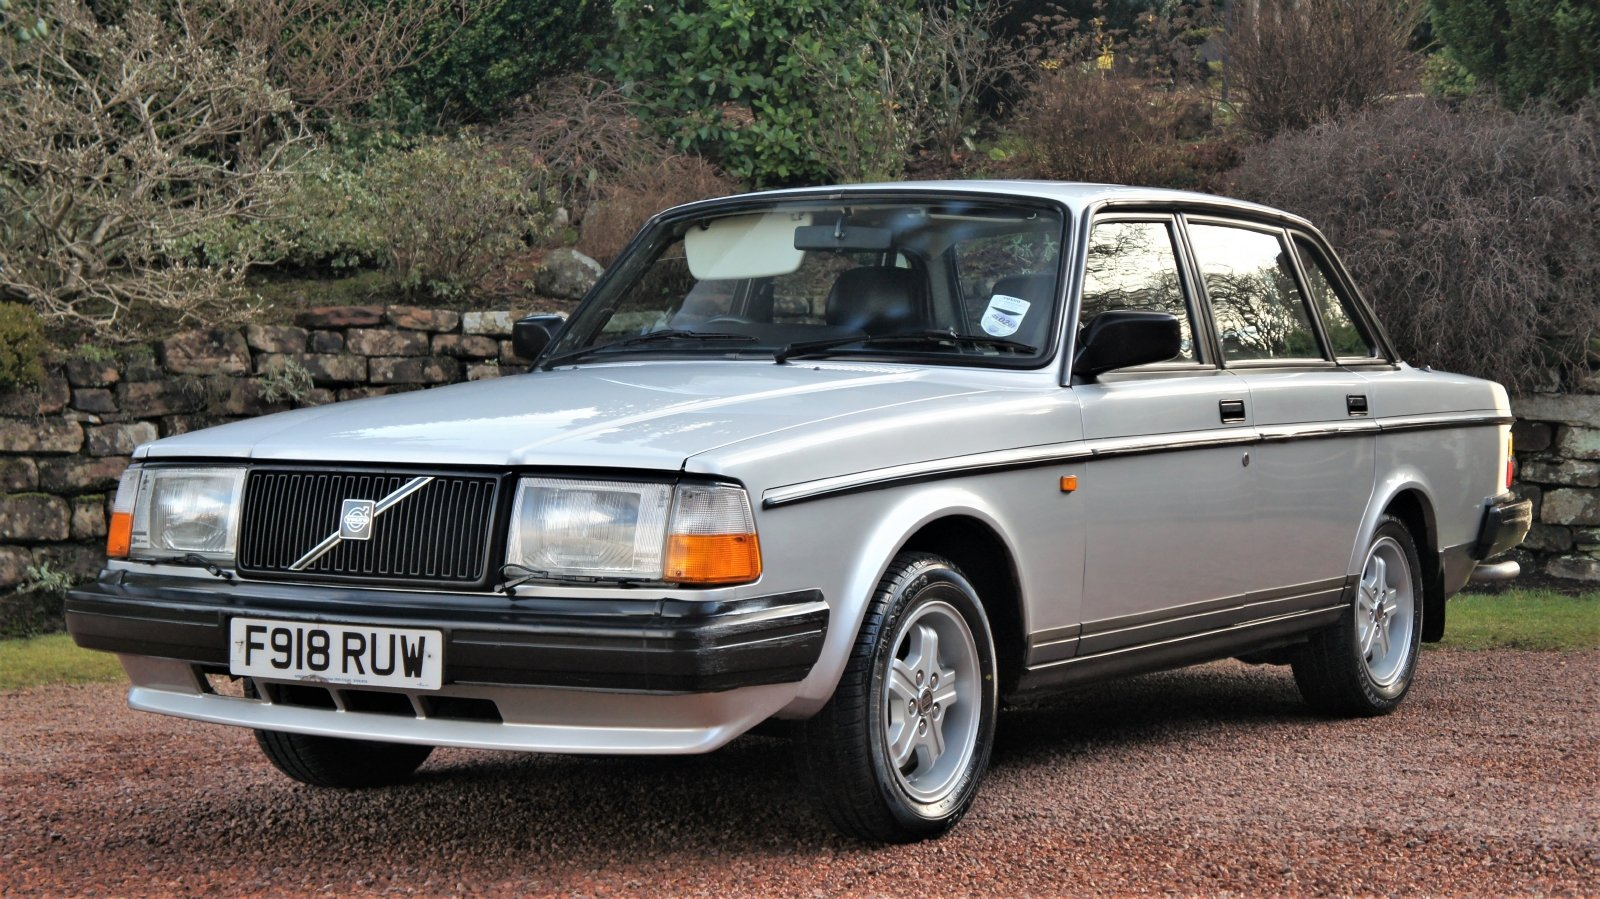 1989 Volvo 240 glt 49000 miles one owner from new For Sale (picture 1 of 6)